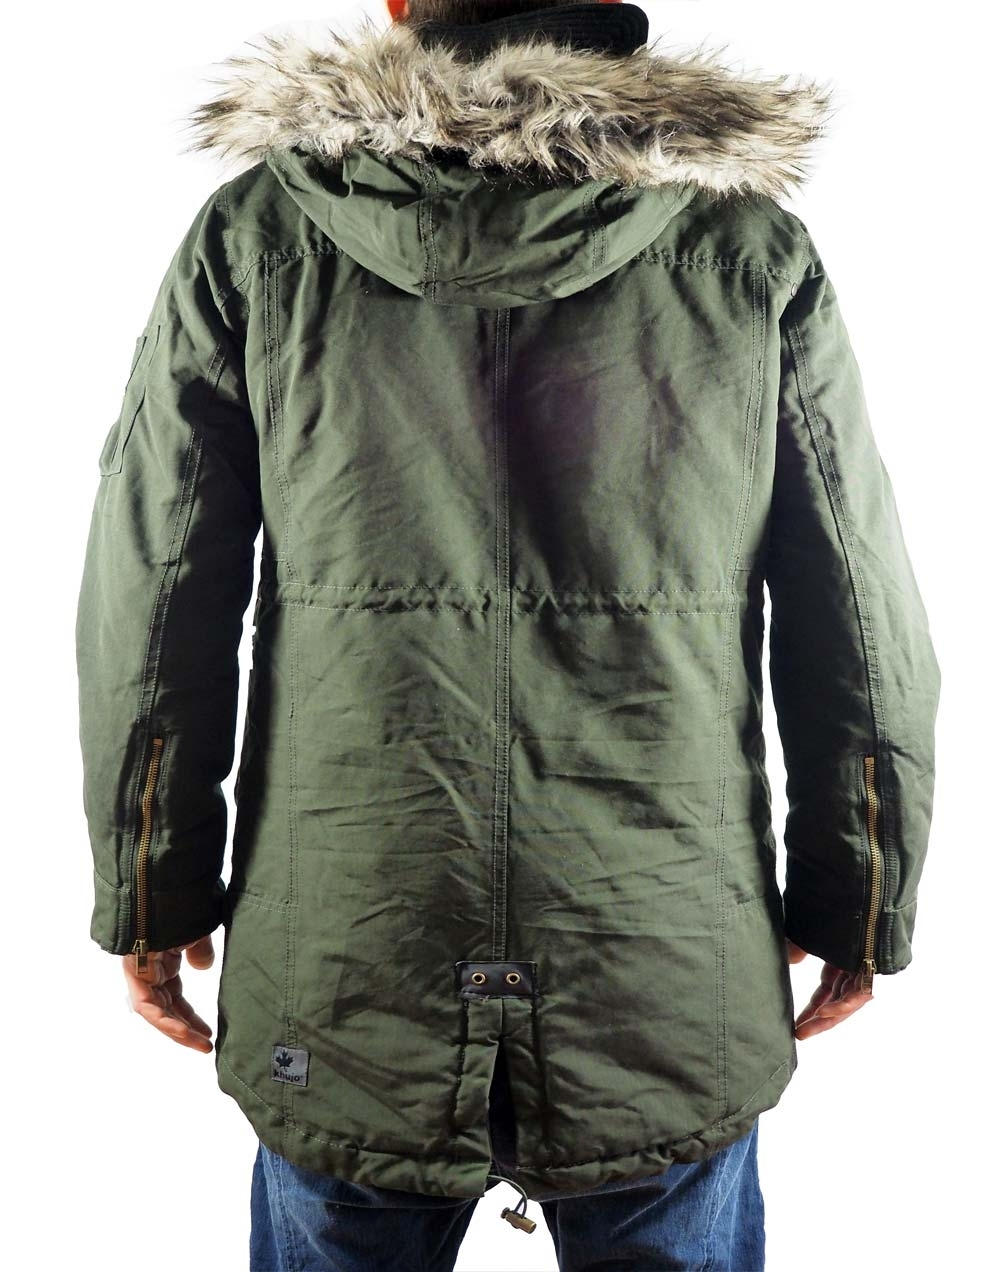 dock winterjacke parka herren olive gr n khujo. Black Bedroom Furniture Sets. Home Design Ideas